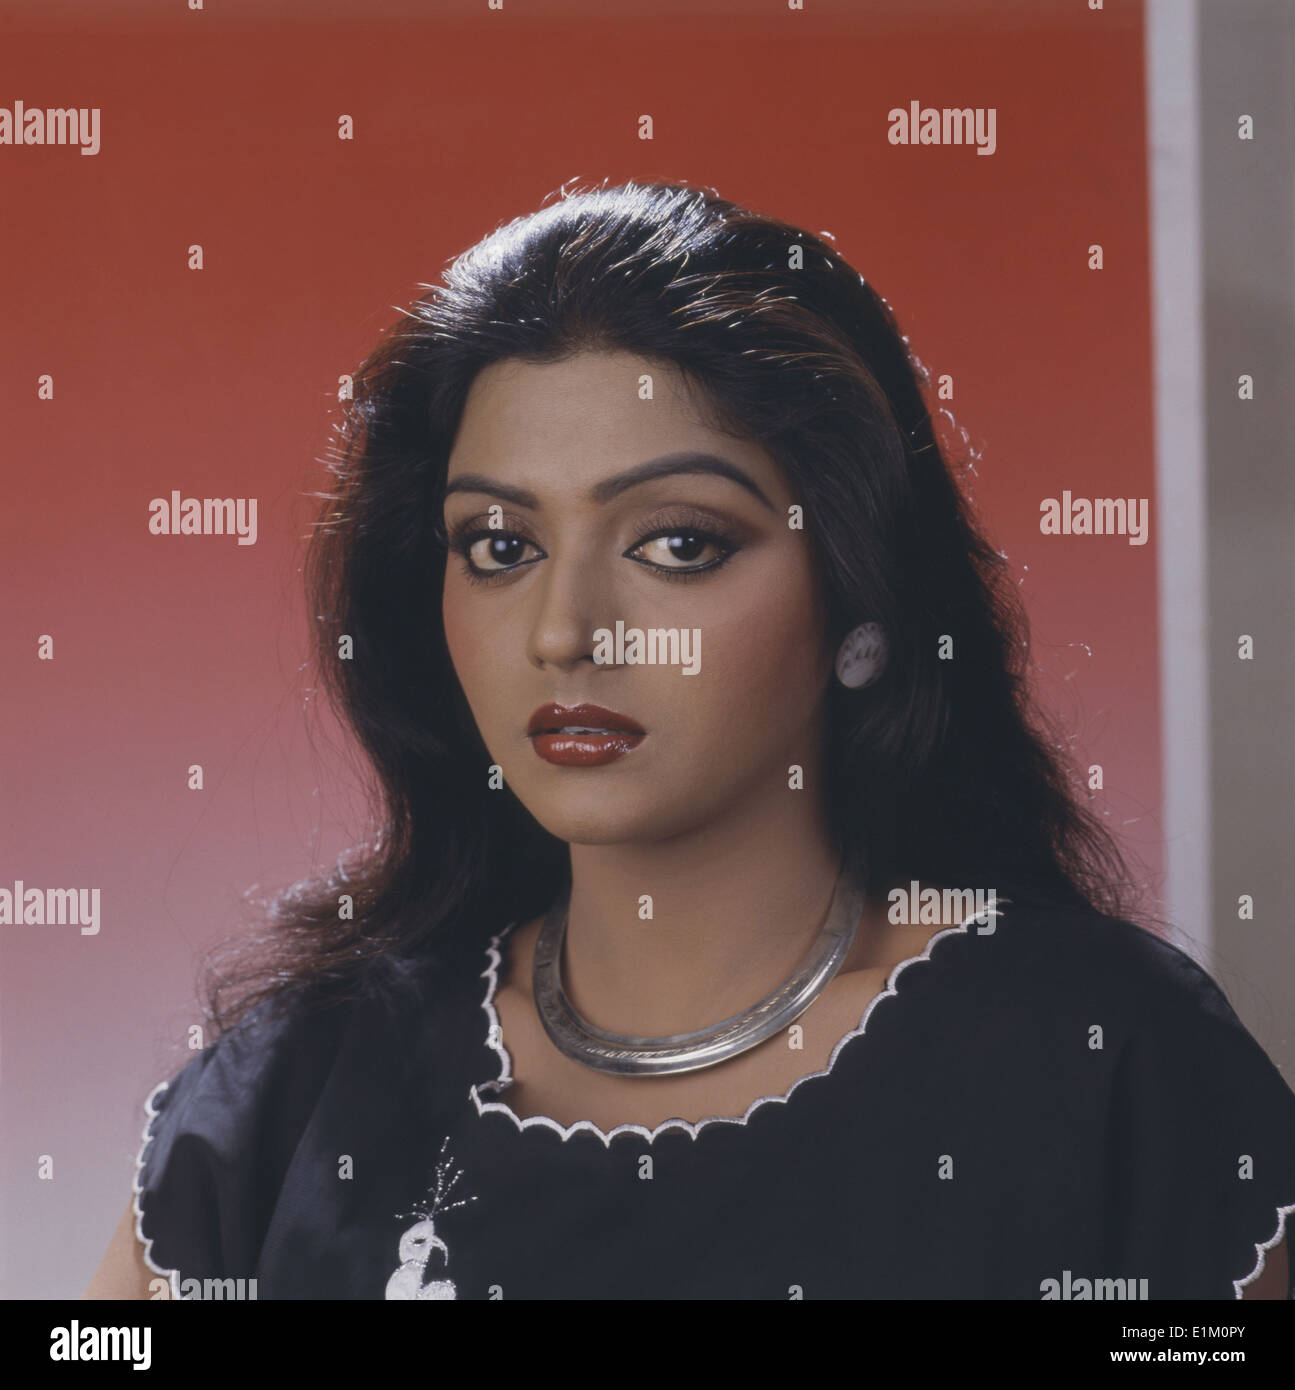 banupriya blue filmbhanupriya height, bhanupriya biography, bhanupriya hot, bhanupriya hot images, bhanupriya family photos, bhanupriya songs, bhanupriya hot fb, bhanupriya navel, bhanupriya facebook, banupriya blue film, bhanupriya sister, bhanupriya wiki, bhanupriya dance, bhanupriya actress